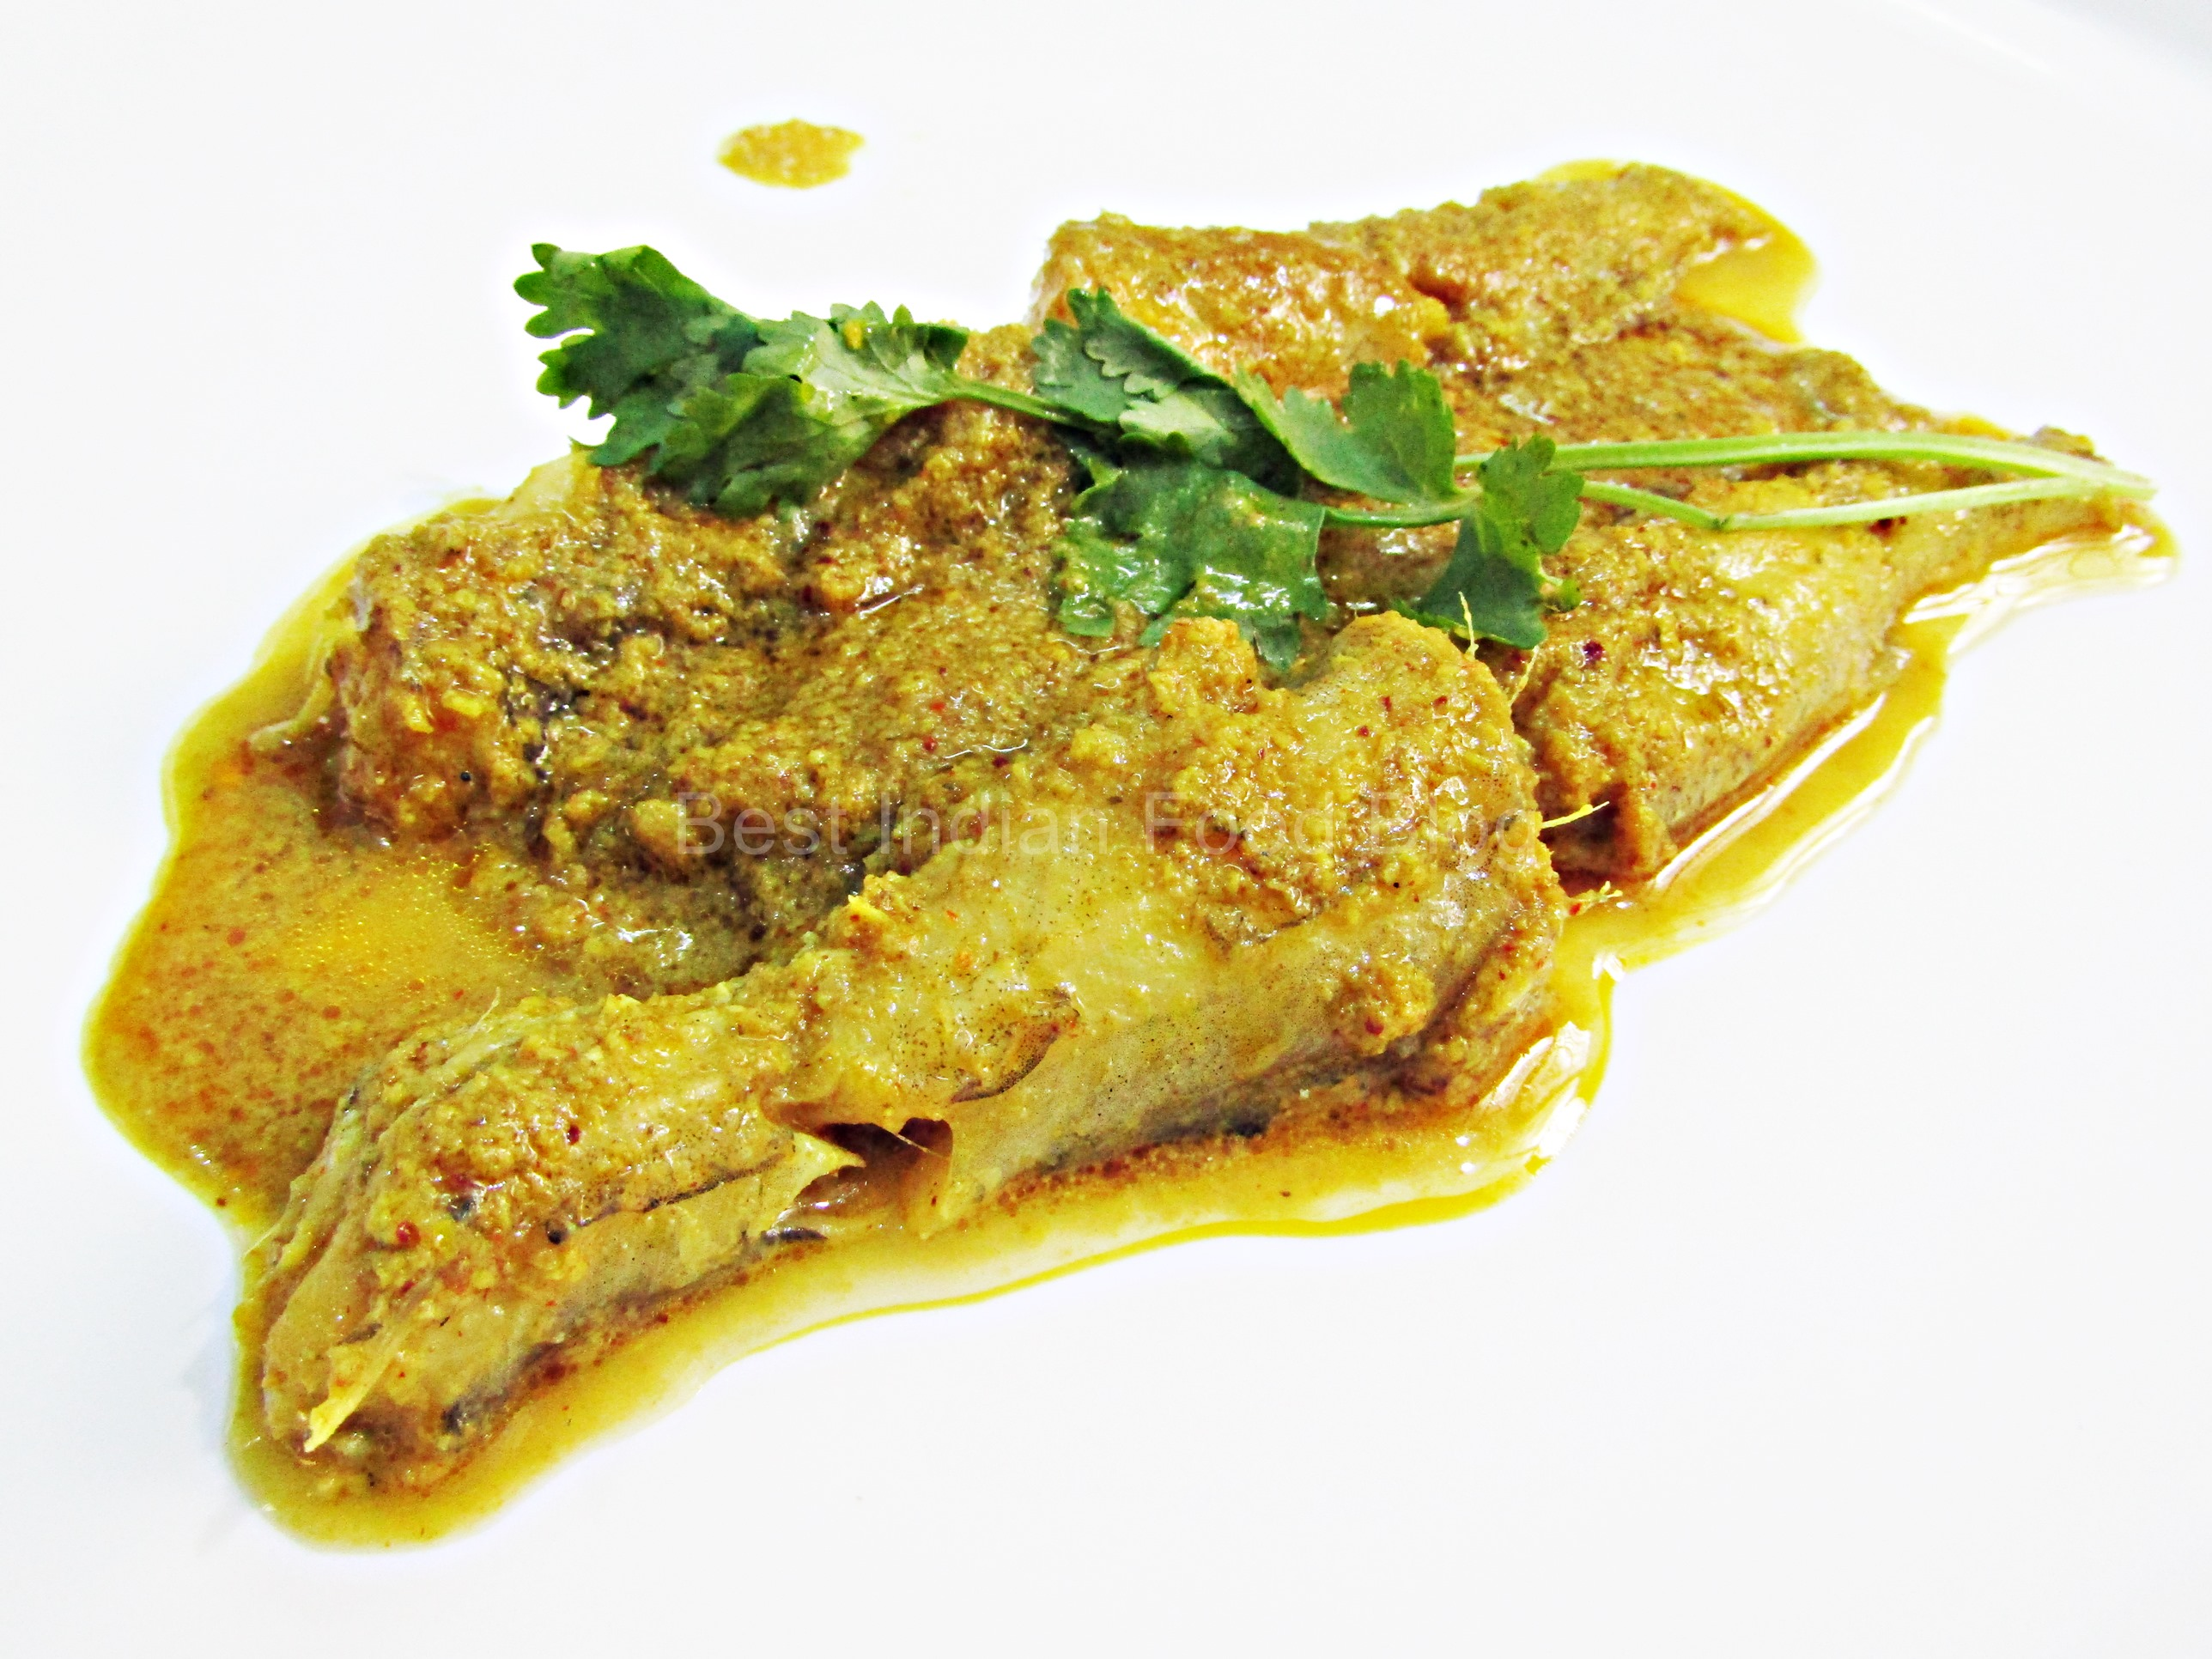 Bombil Kalvan from Daman and Diu, India | Best Indian Food Blog | Bombay Duck Fish recipe